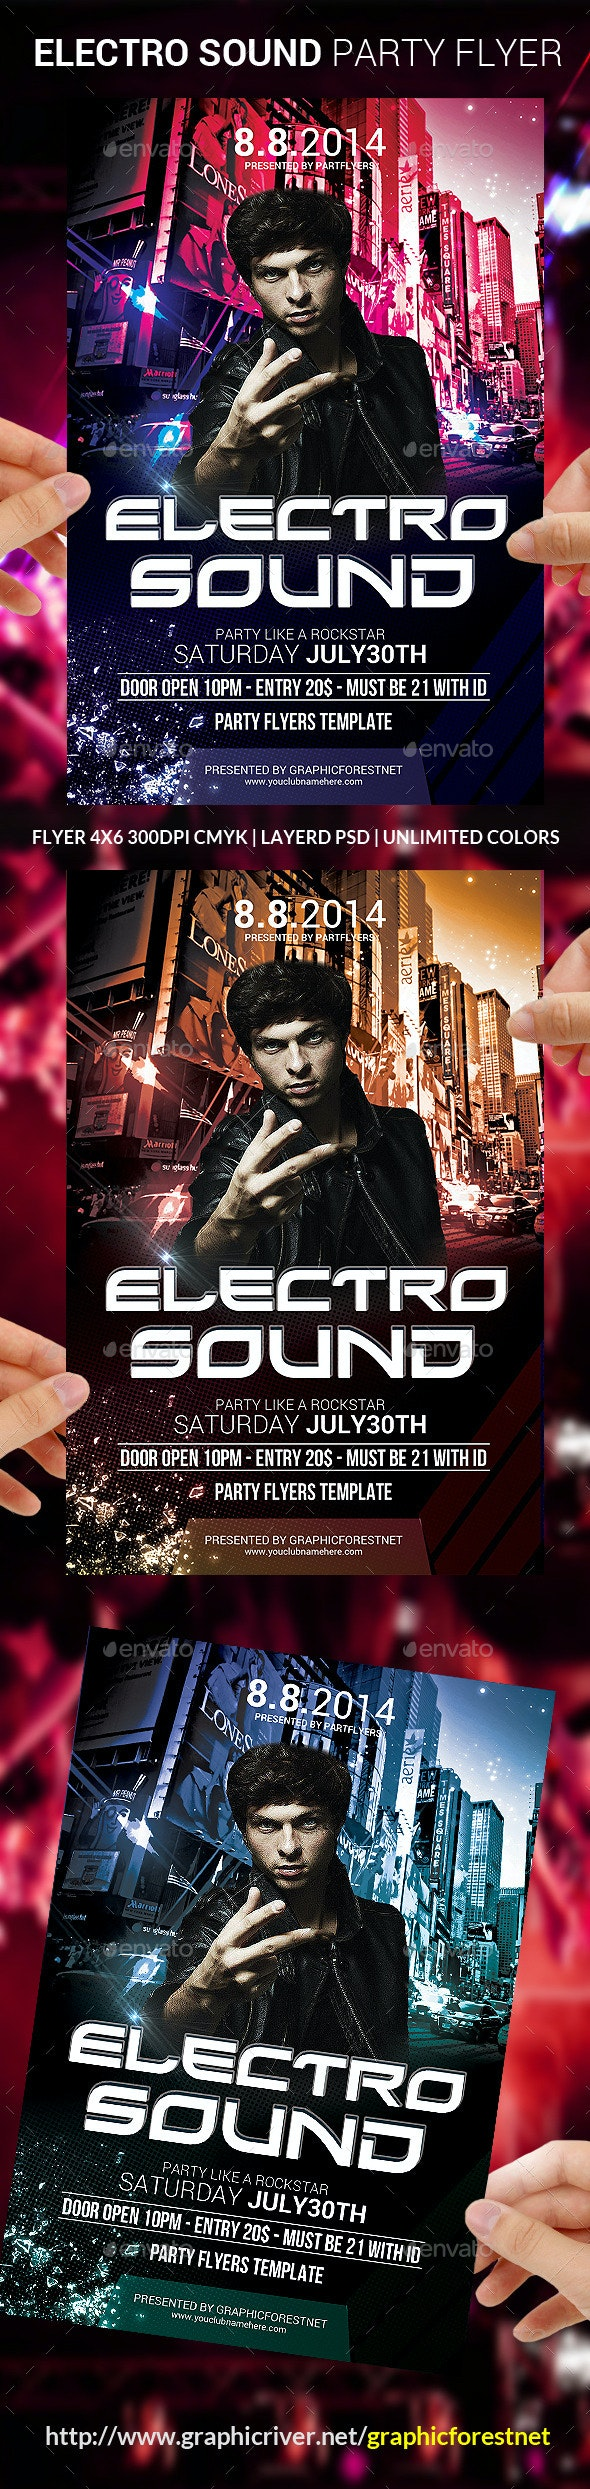 Electro Sound Flyer Template - Clubs & Parties Events